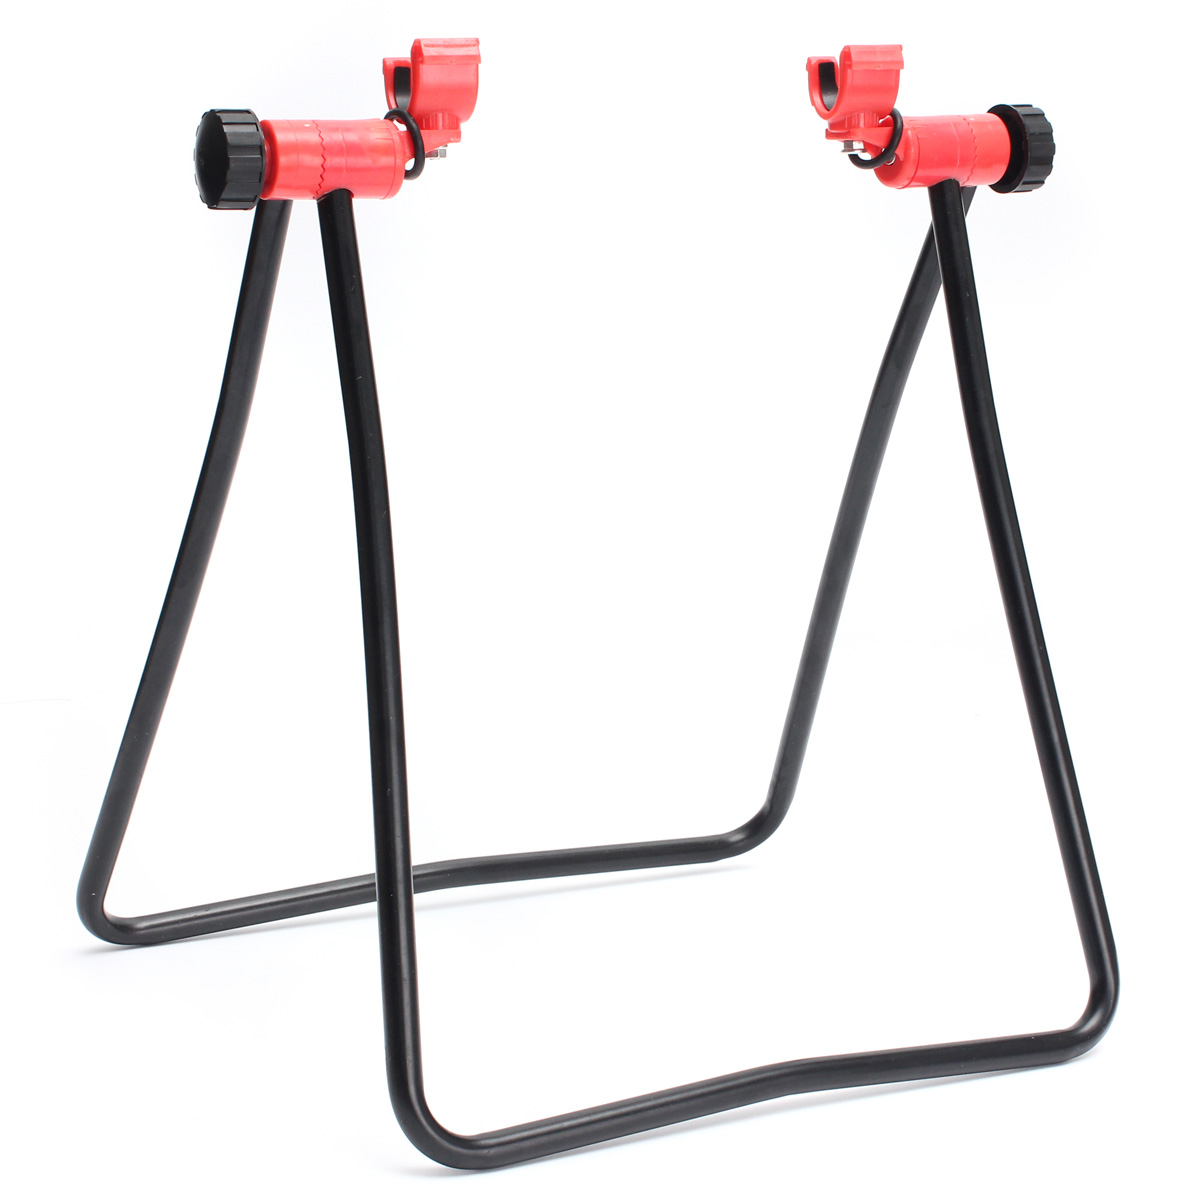 MTB Road Mountain Cycling Bicycle Bike Stand Display Wheel Hub Bike Repair Stand Kick Stand for Folding Parking Holder 50ml mtb cycling bicycle chain special lube lubricat oil cleaner repair grease bike lubrication